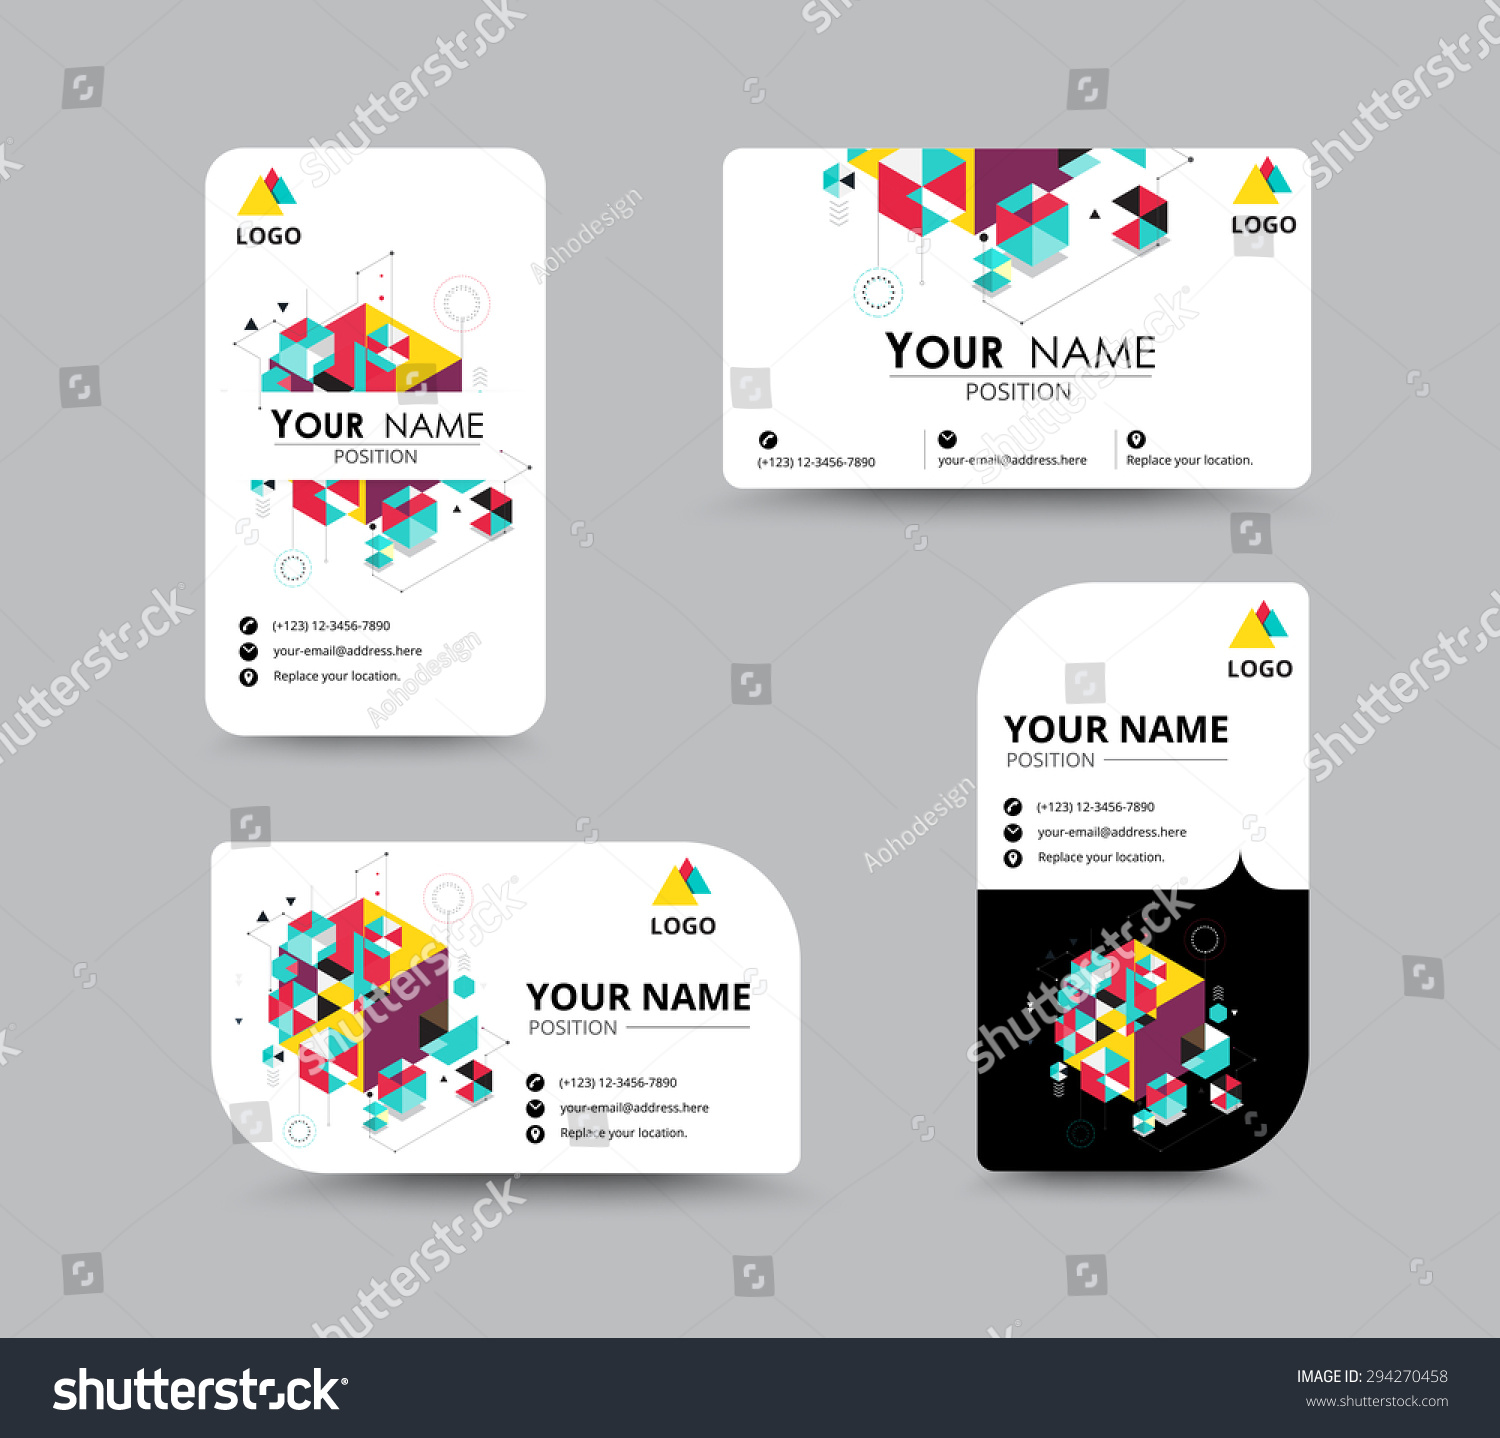 isometric business greeting card template design stock vector